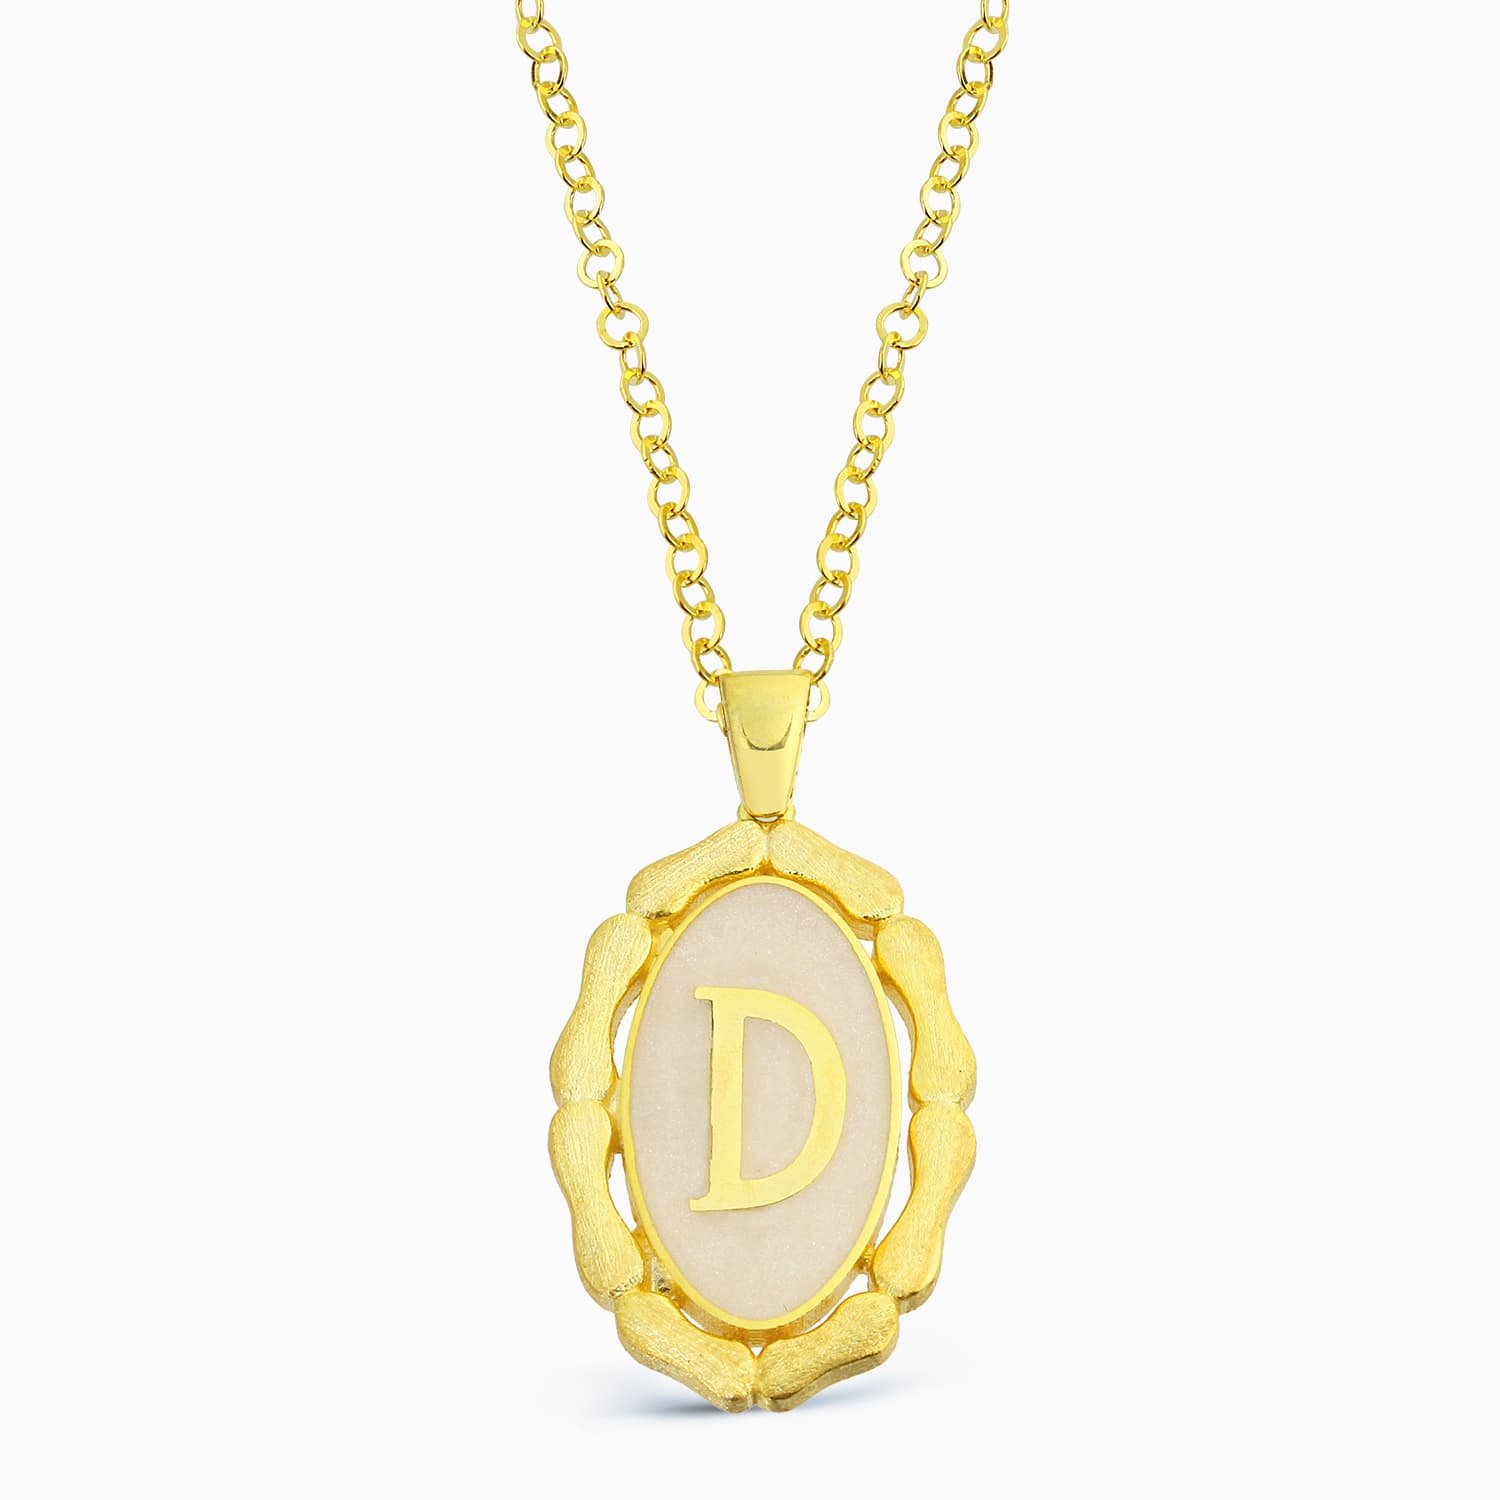 LETTER D MINNED NECKLACE